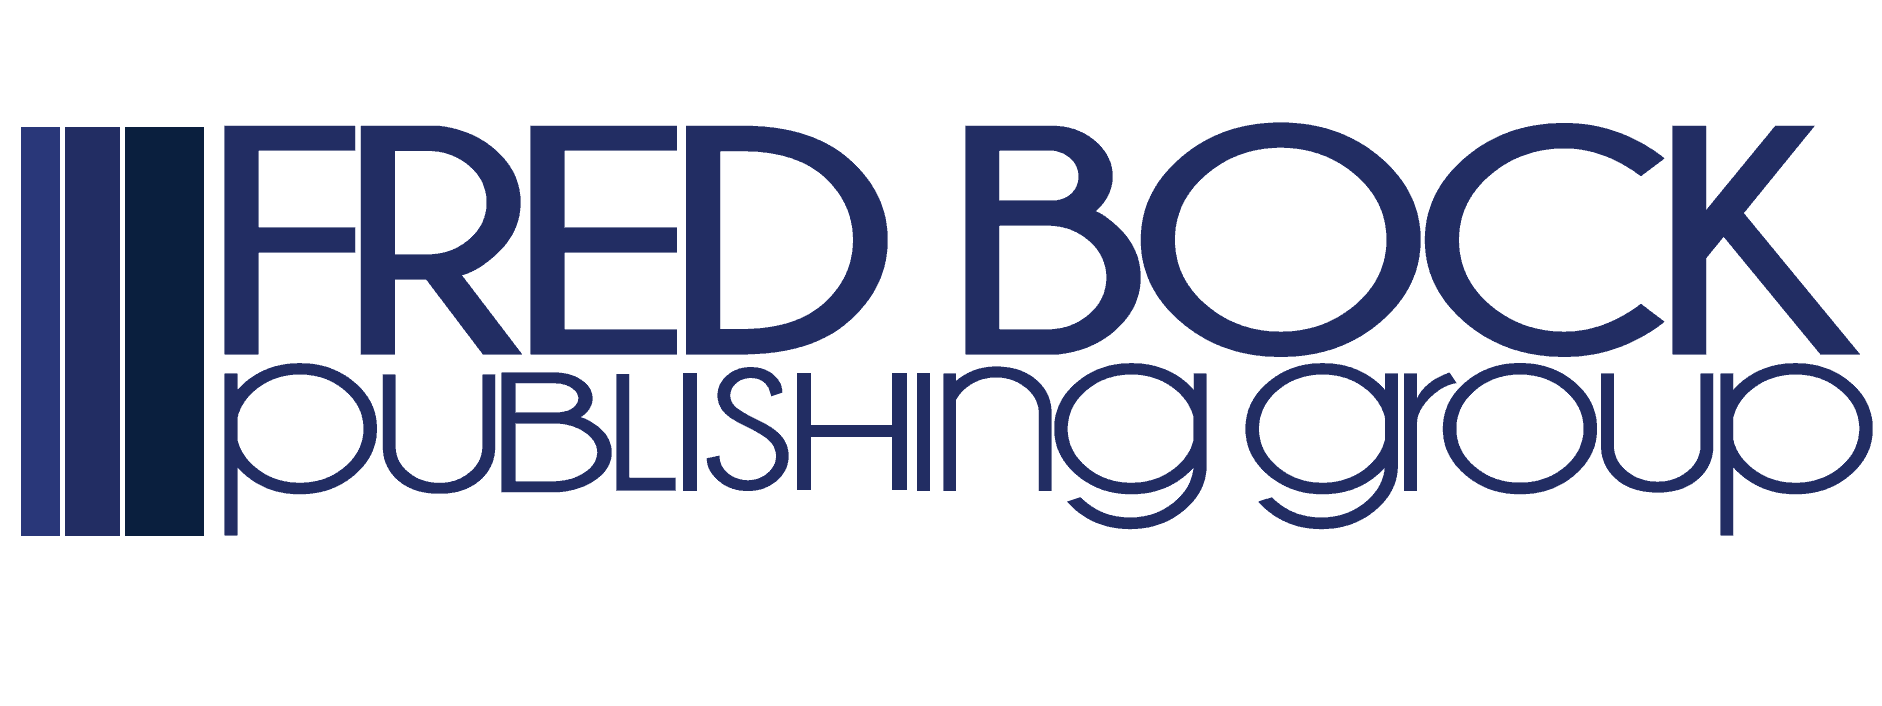 Fred Bock Publishing Group